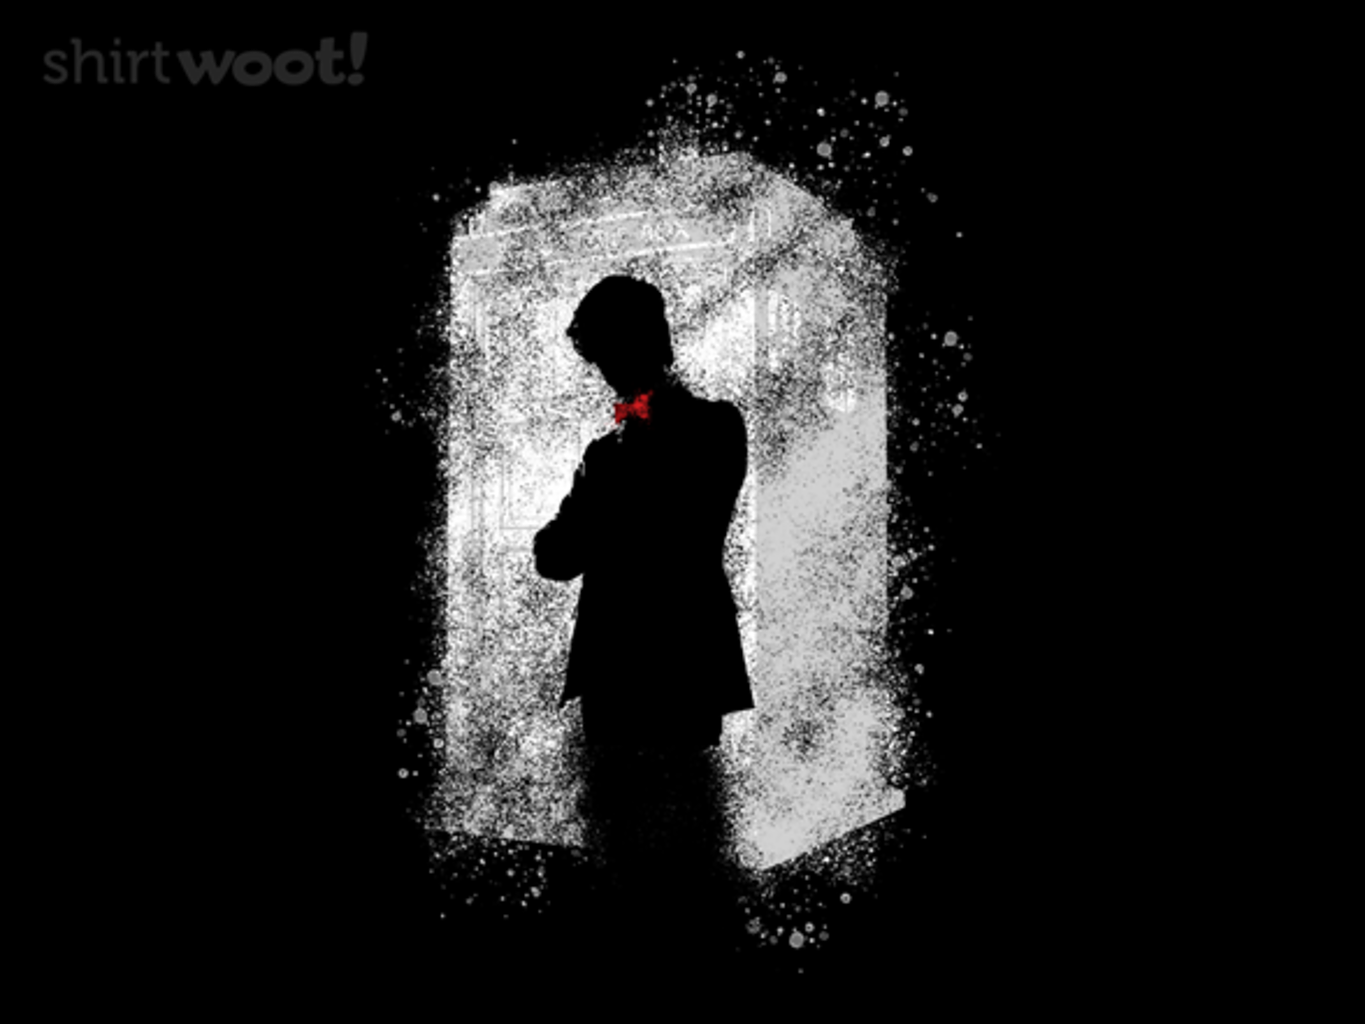 Woot!: Time Doctor